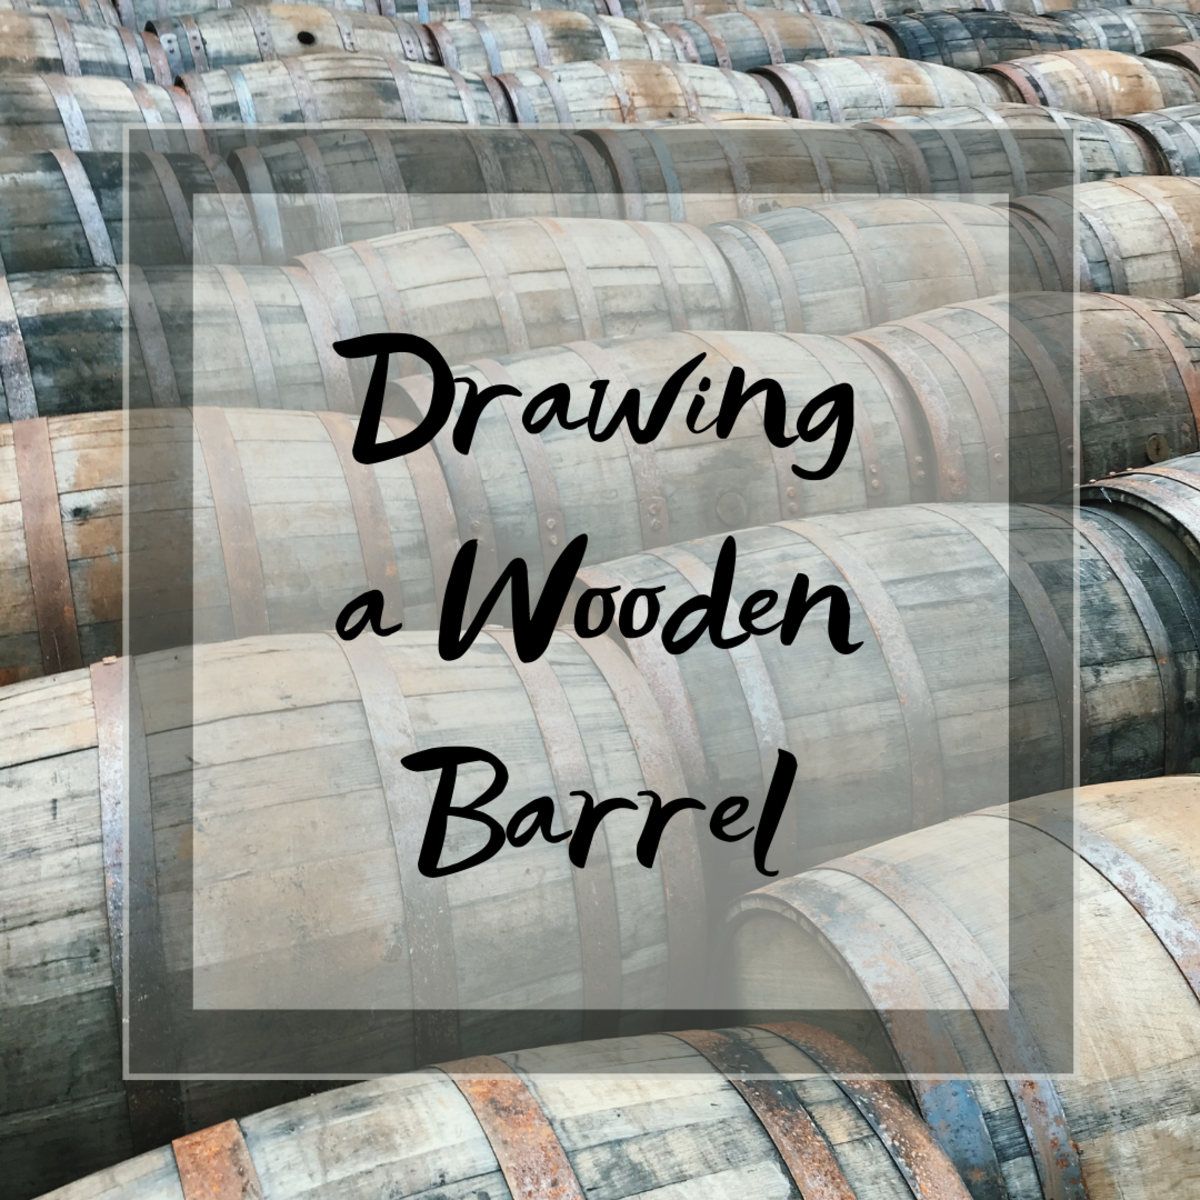 Learn how to draw an old-fashioned wooden barrel in this easy, step-by-step guide